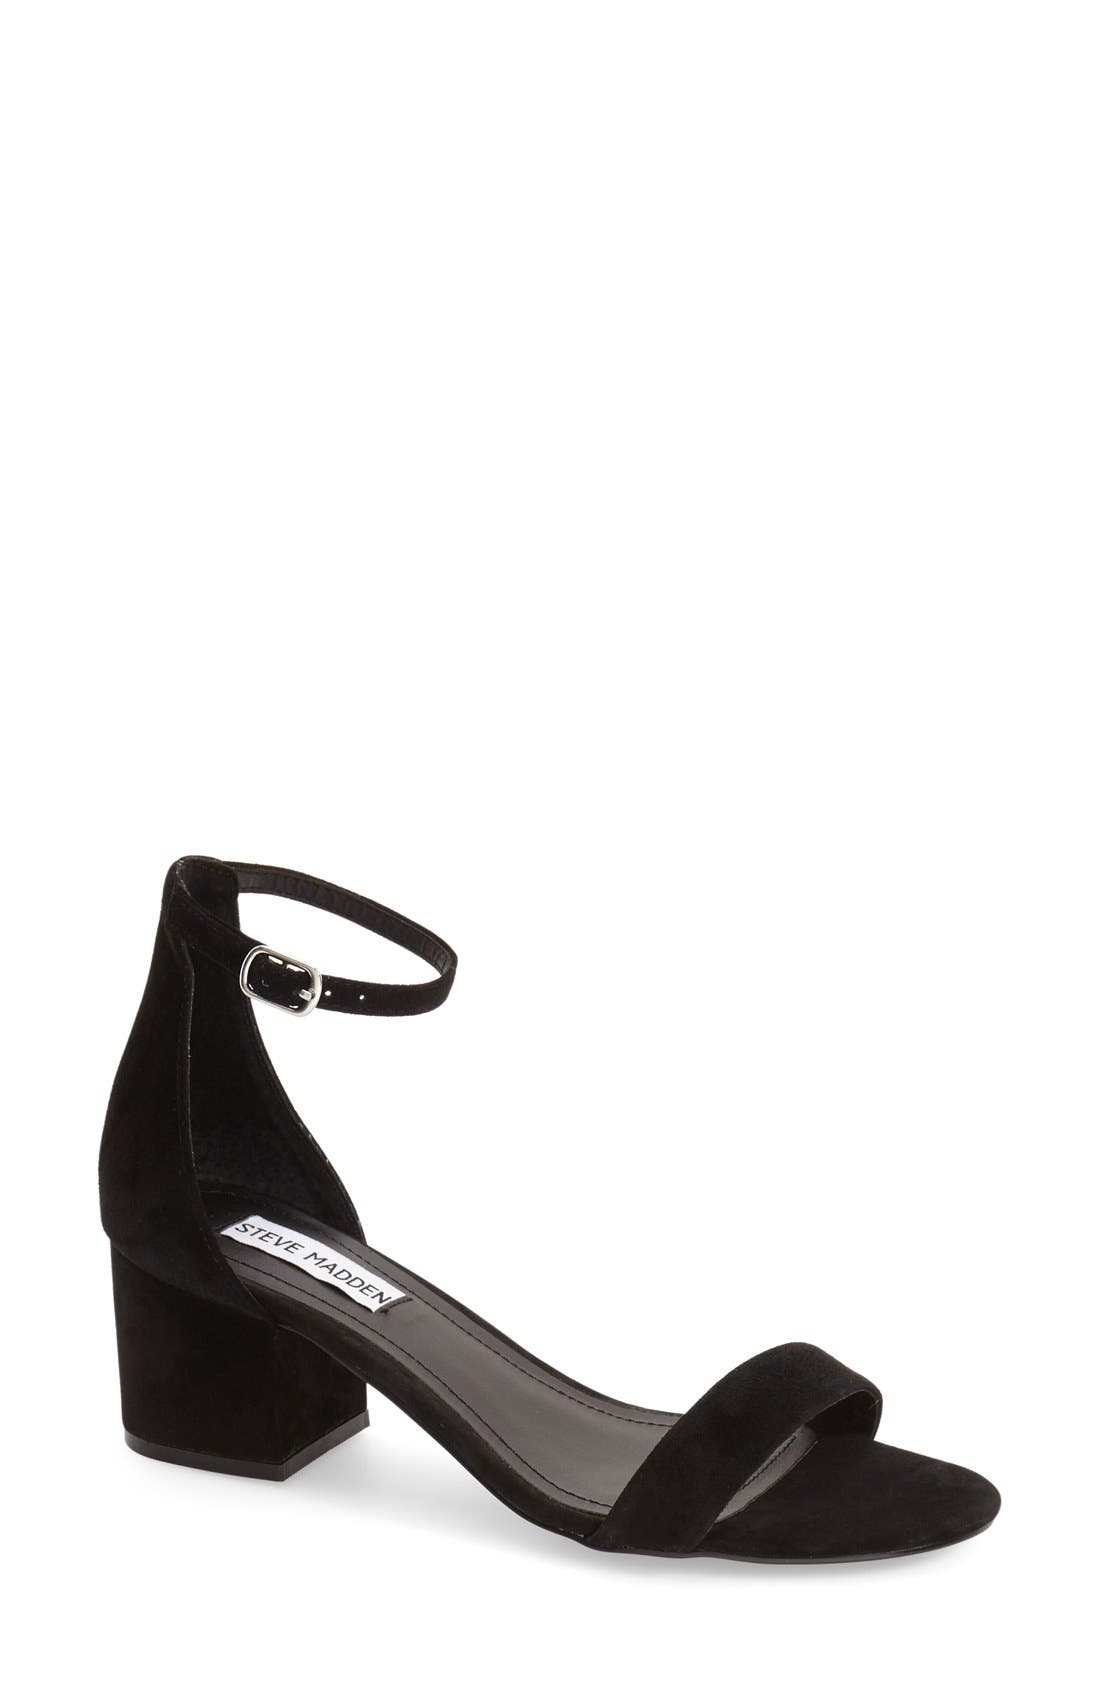 STEVE MADDEN, Irenee Ankle Strap Sandal, Main thumbnail 1, color, BLACK SUEDE